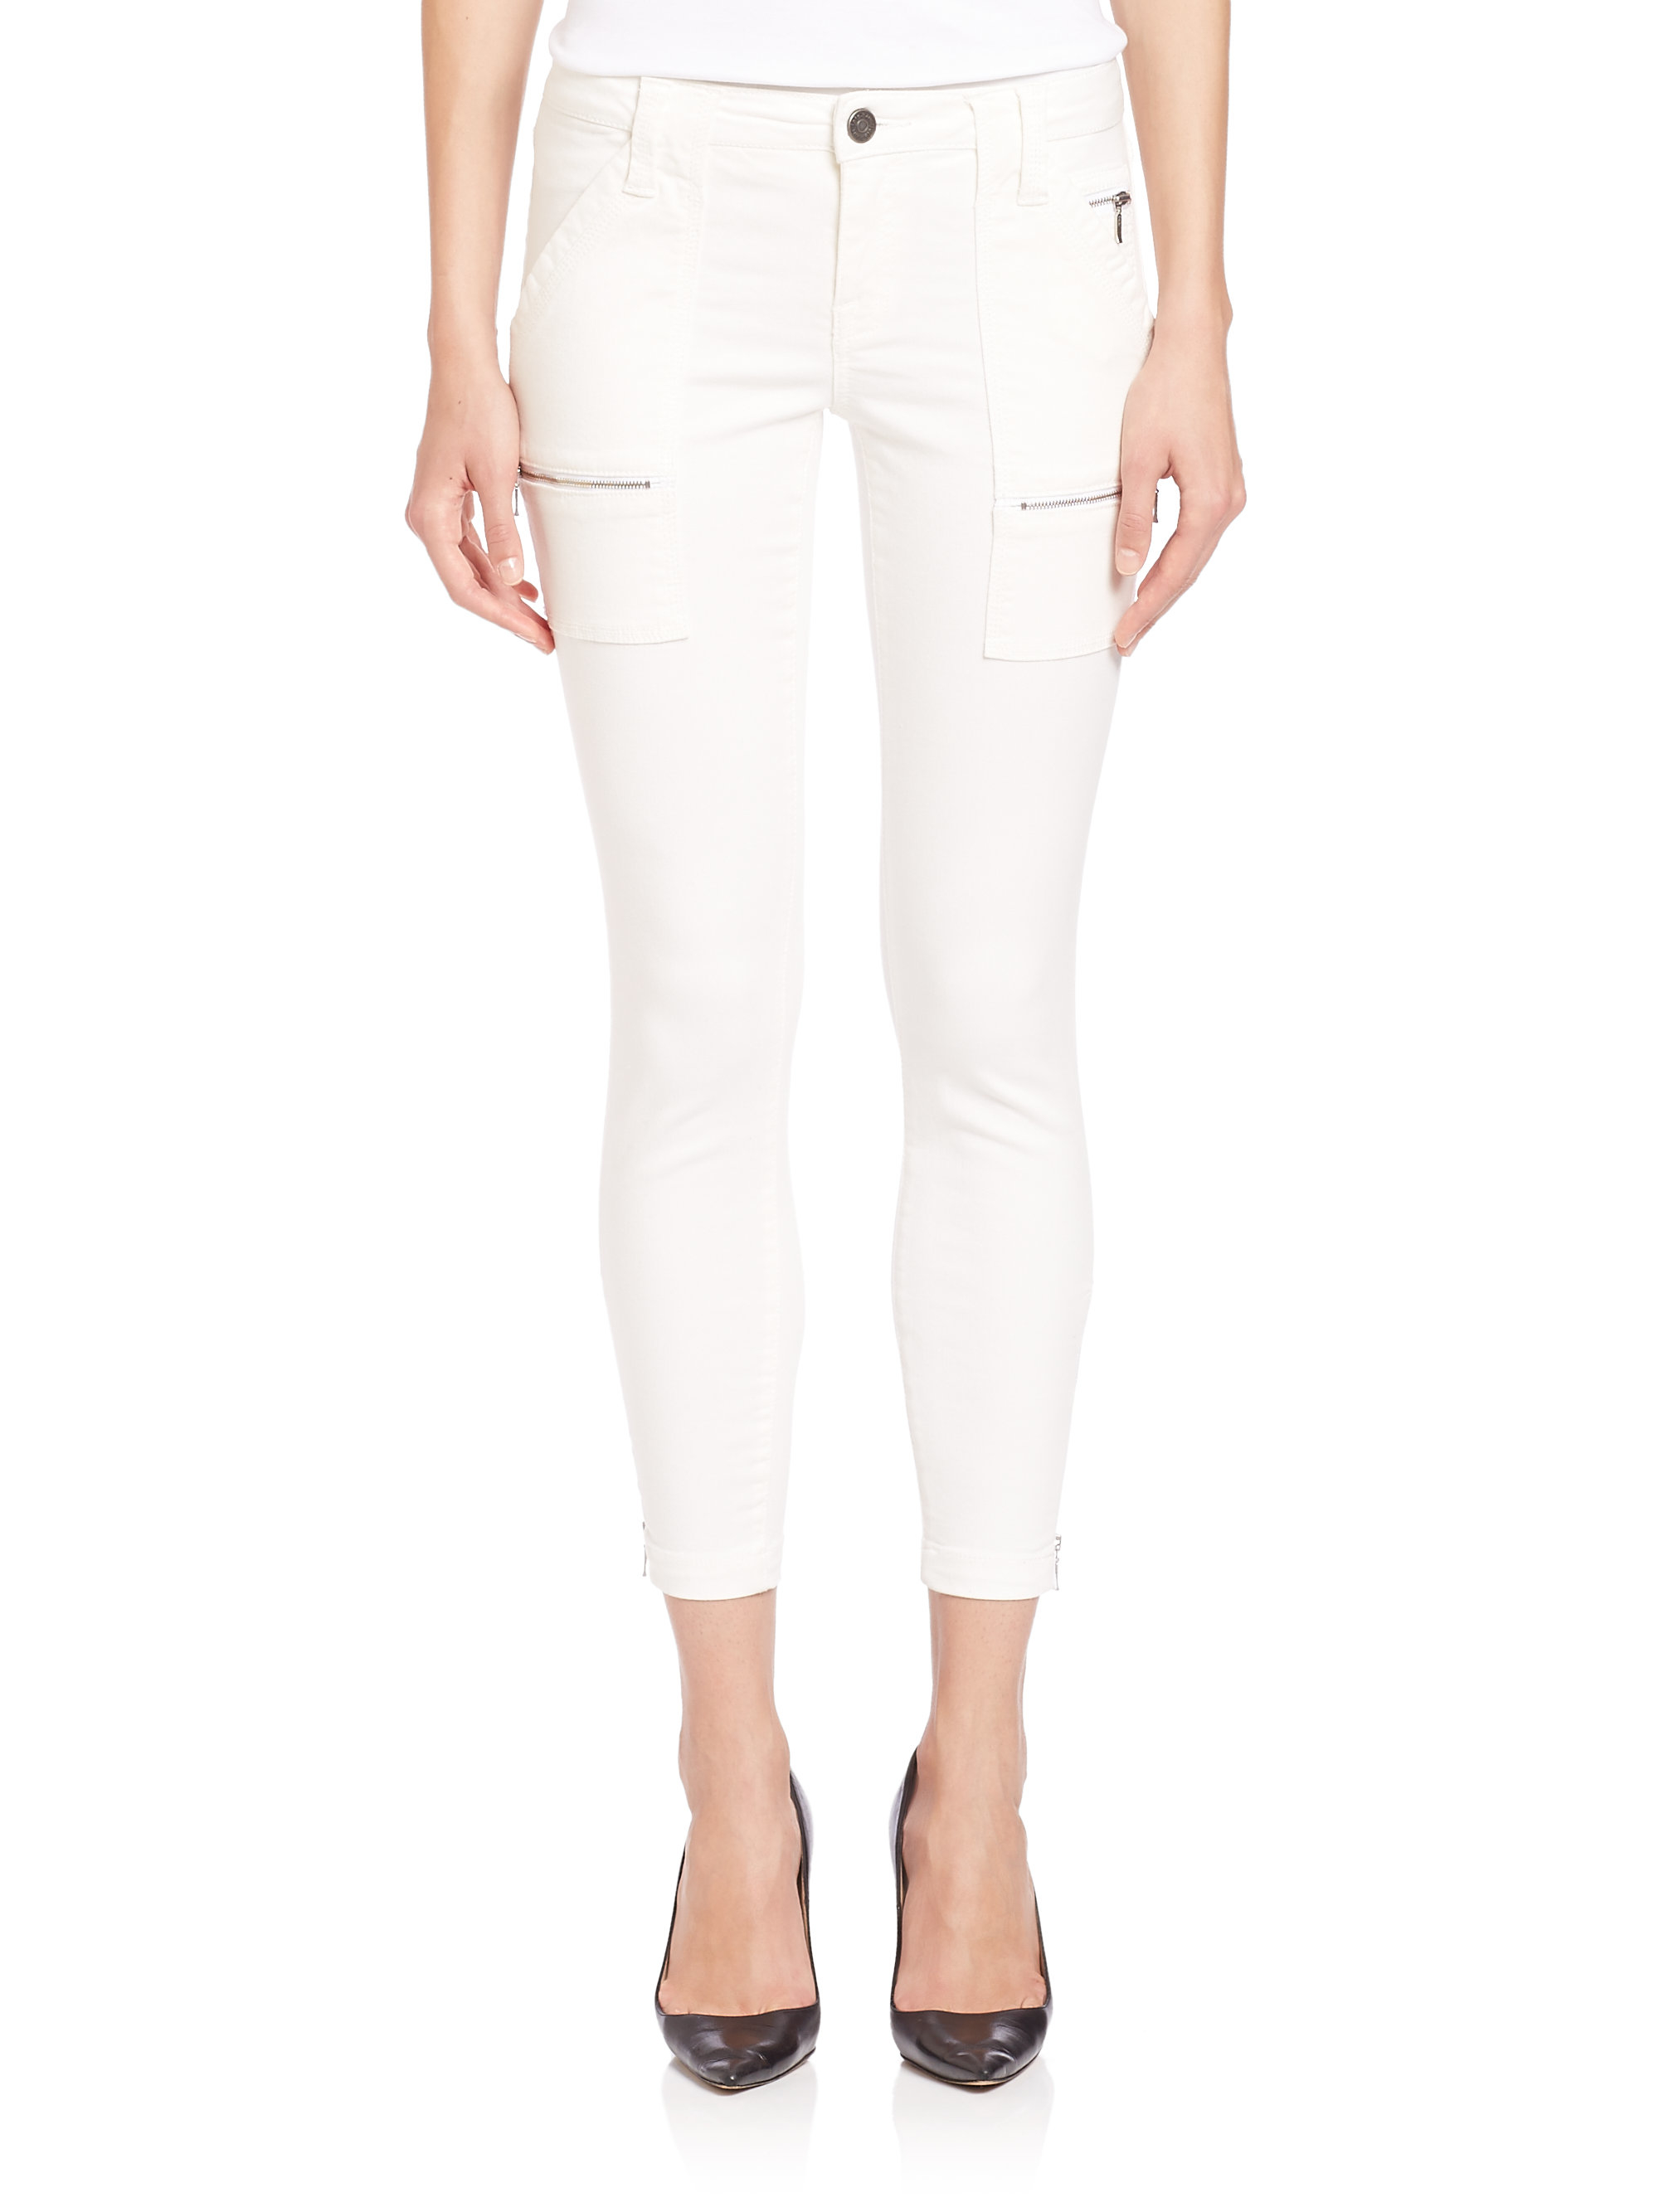 Joie Park Skinny Twill Pants in White | Lyst